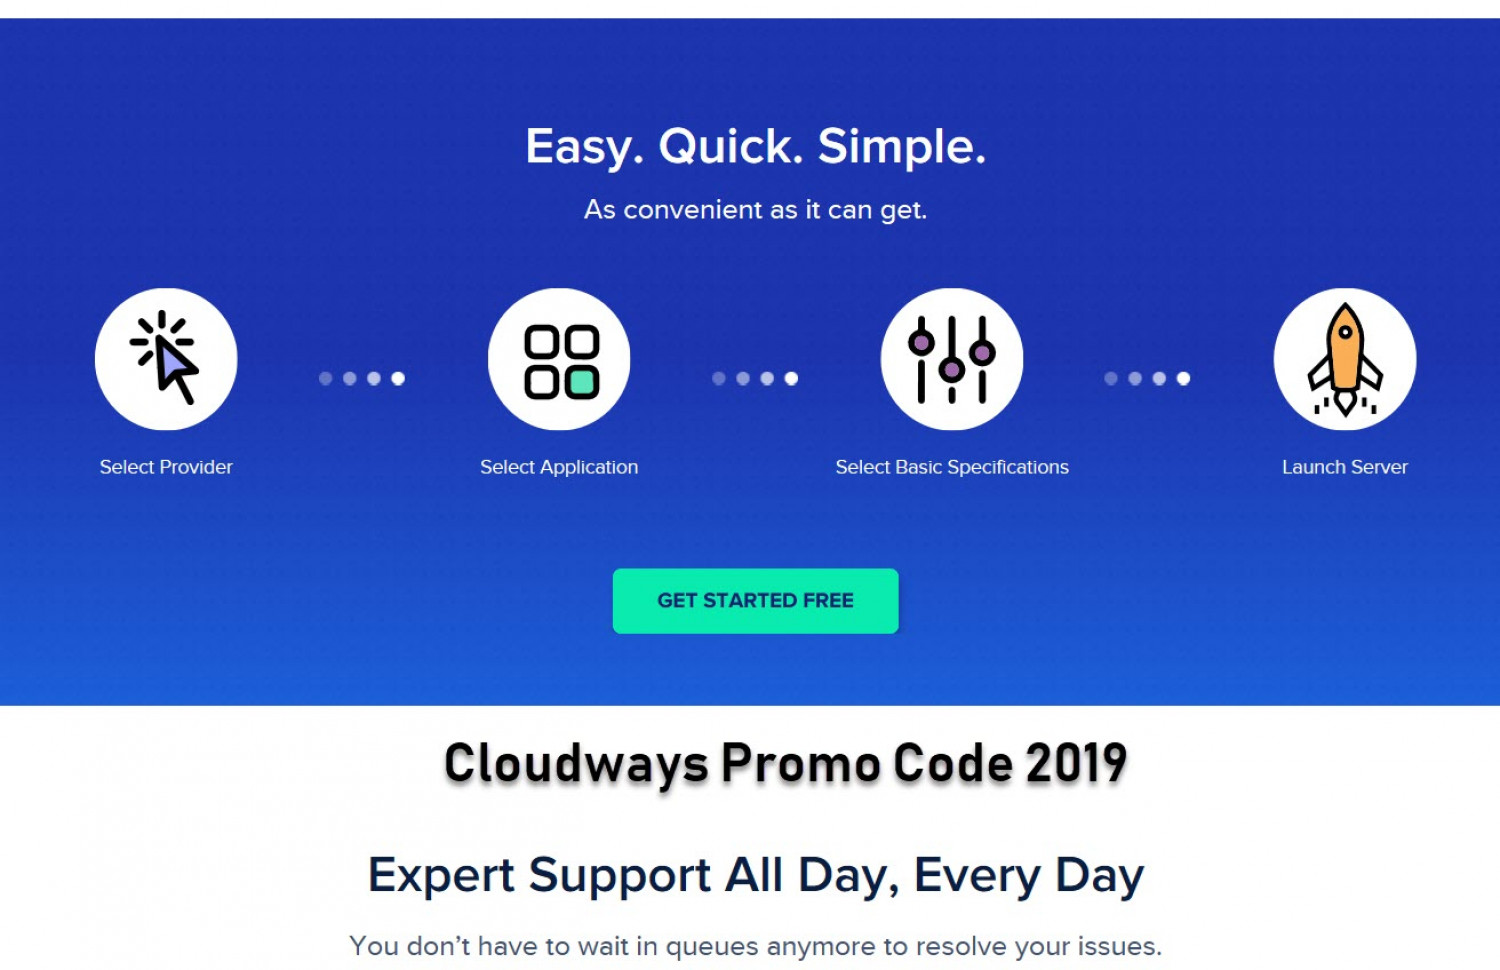 Cloudways Hosting Features (Including Promo Code) Infographic